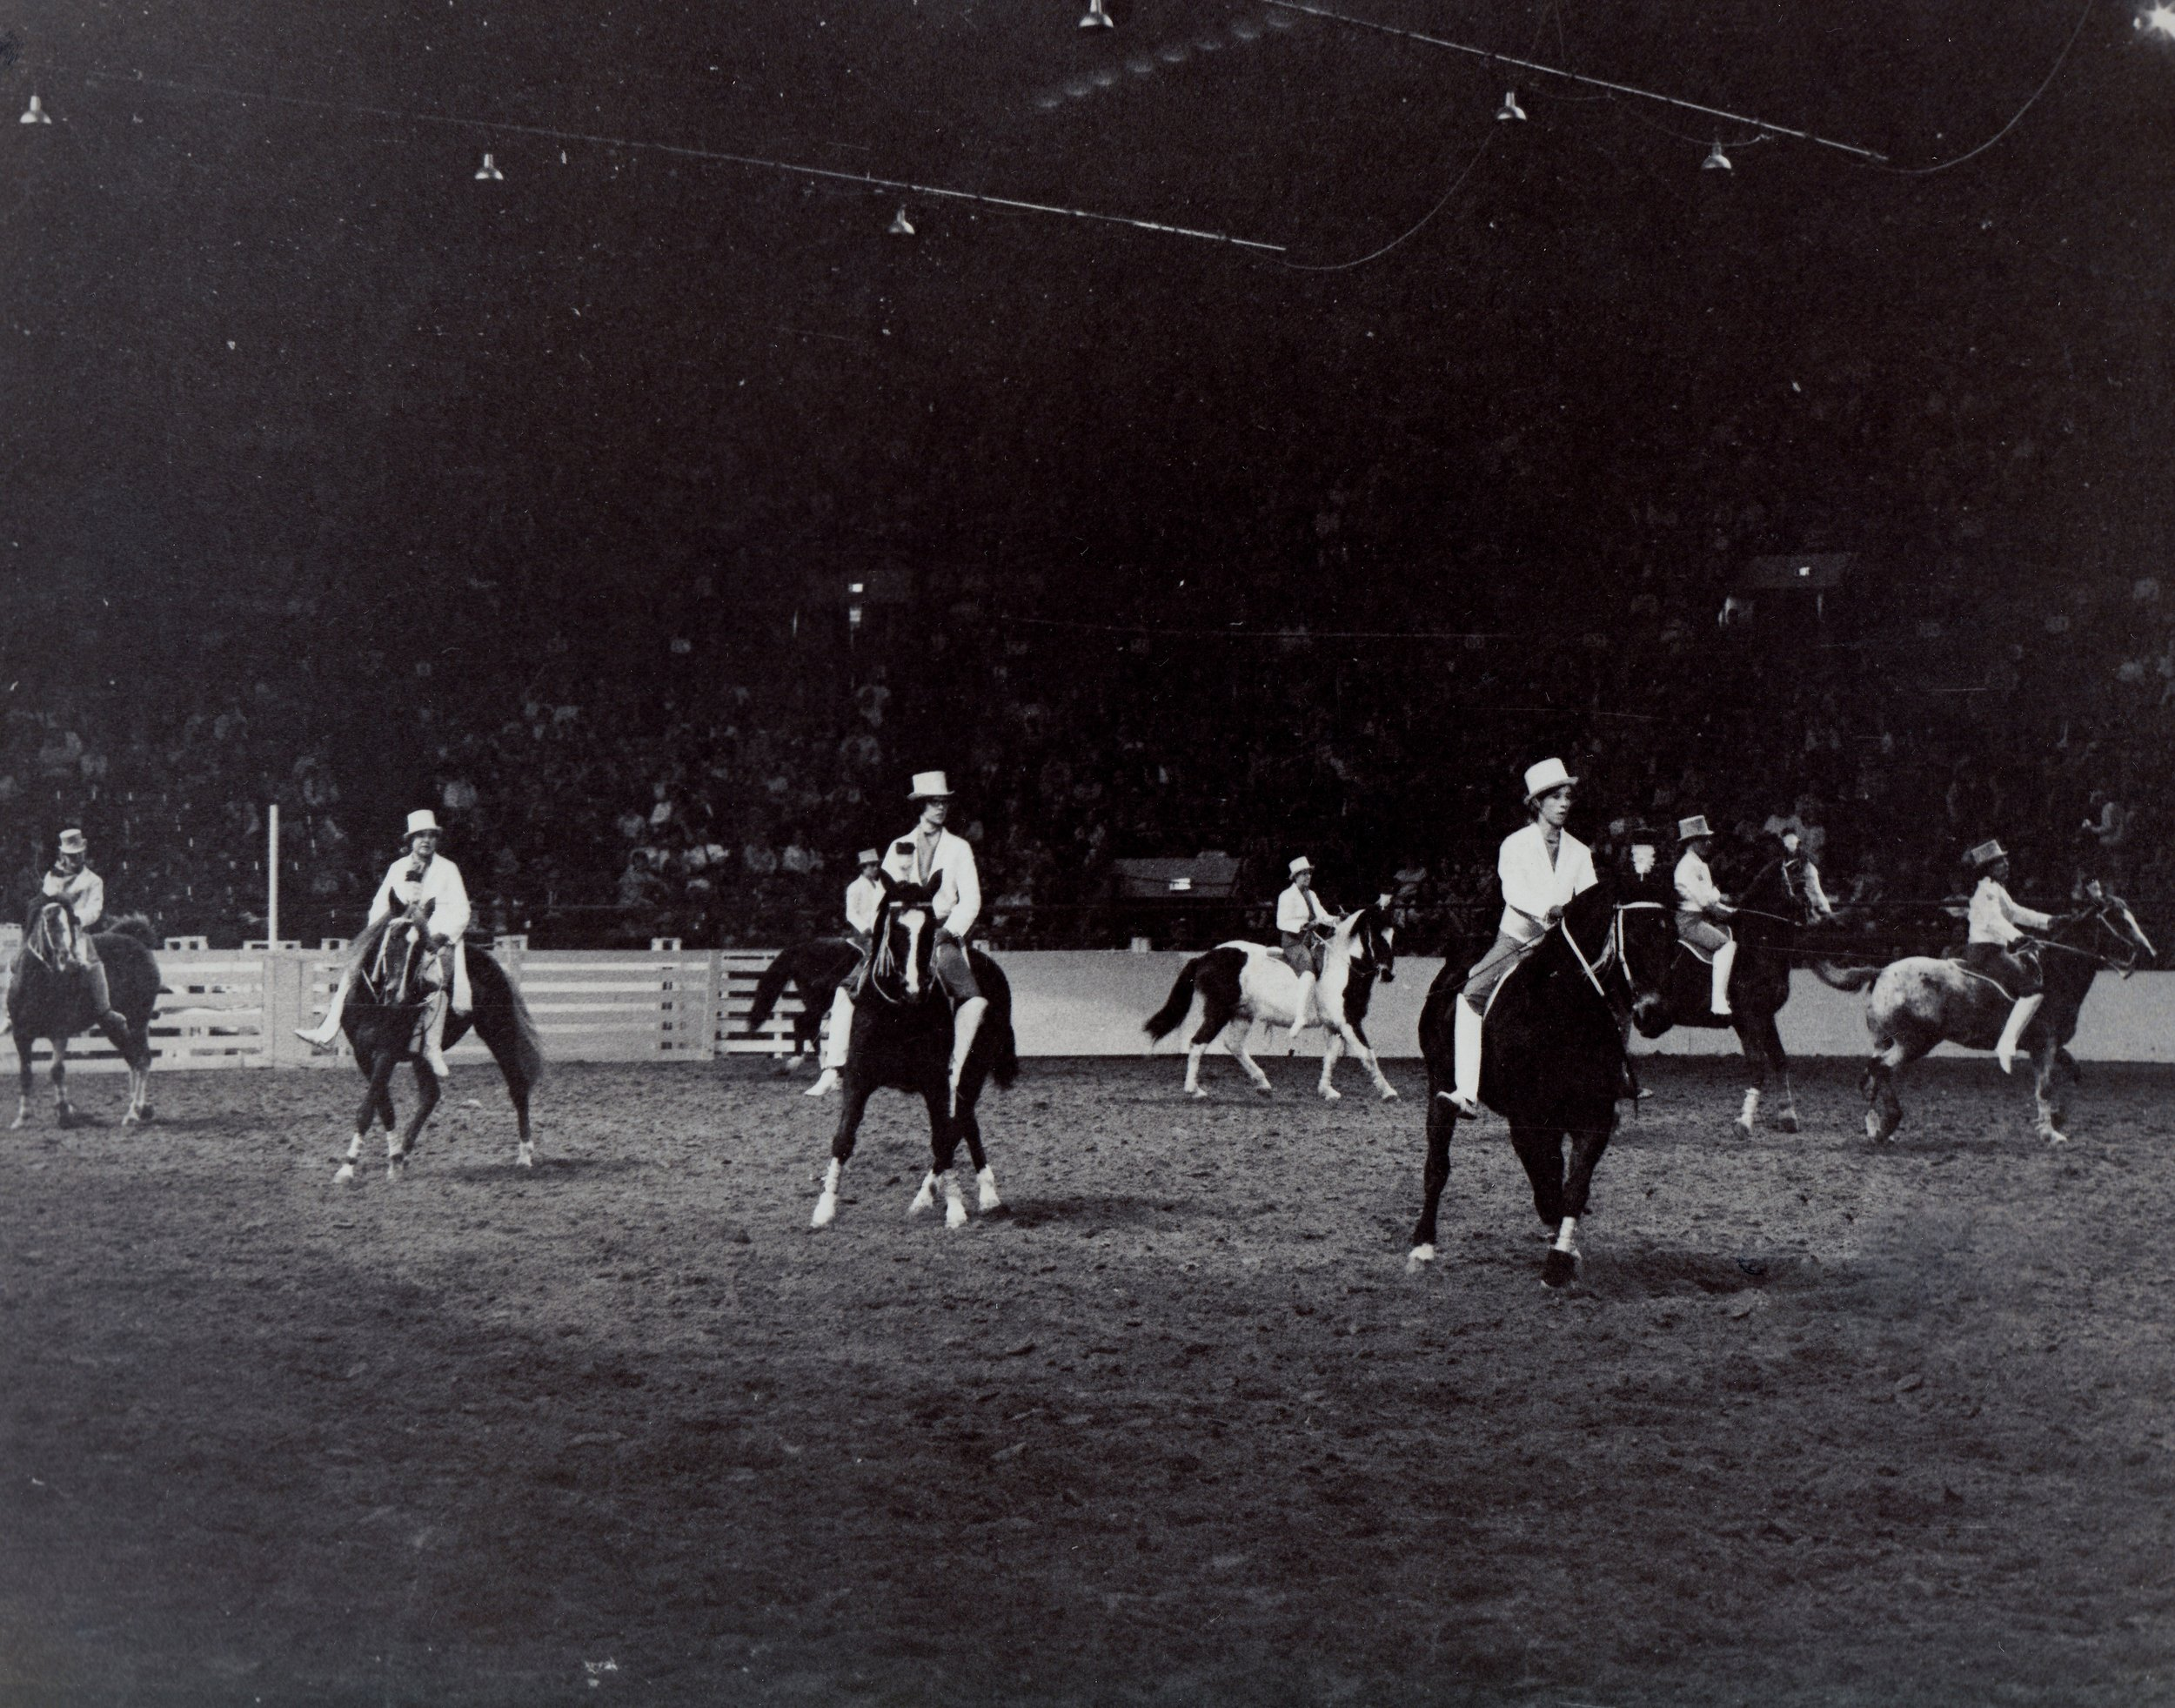 Riders perform the side-pass maneuver at the 1969 National Western Stock Show.